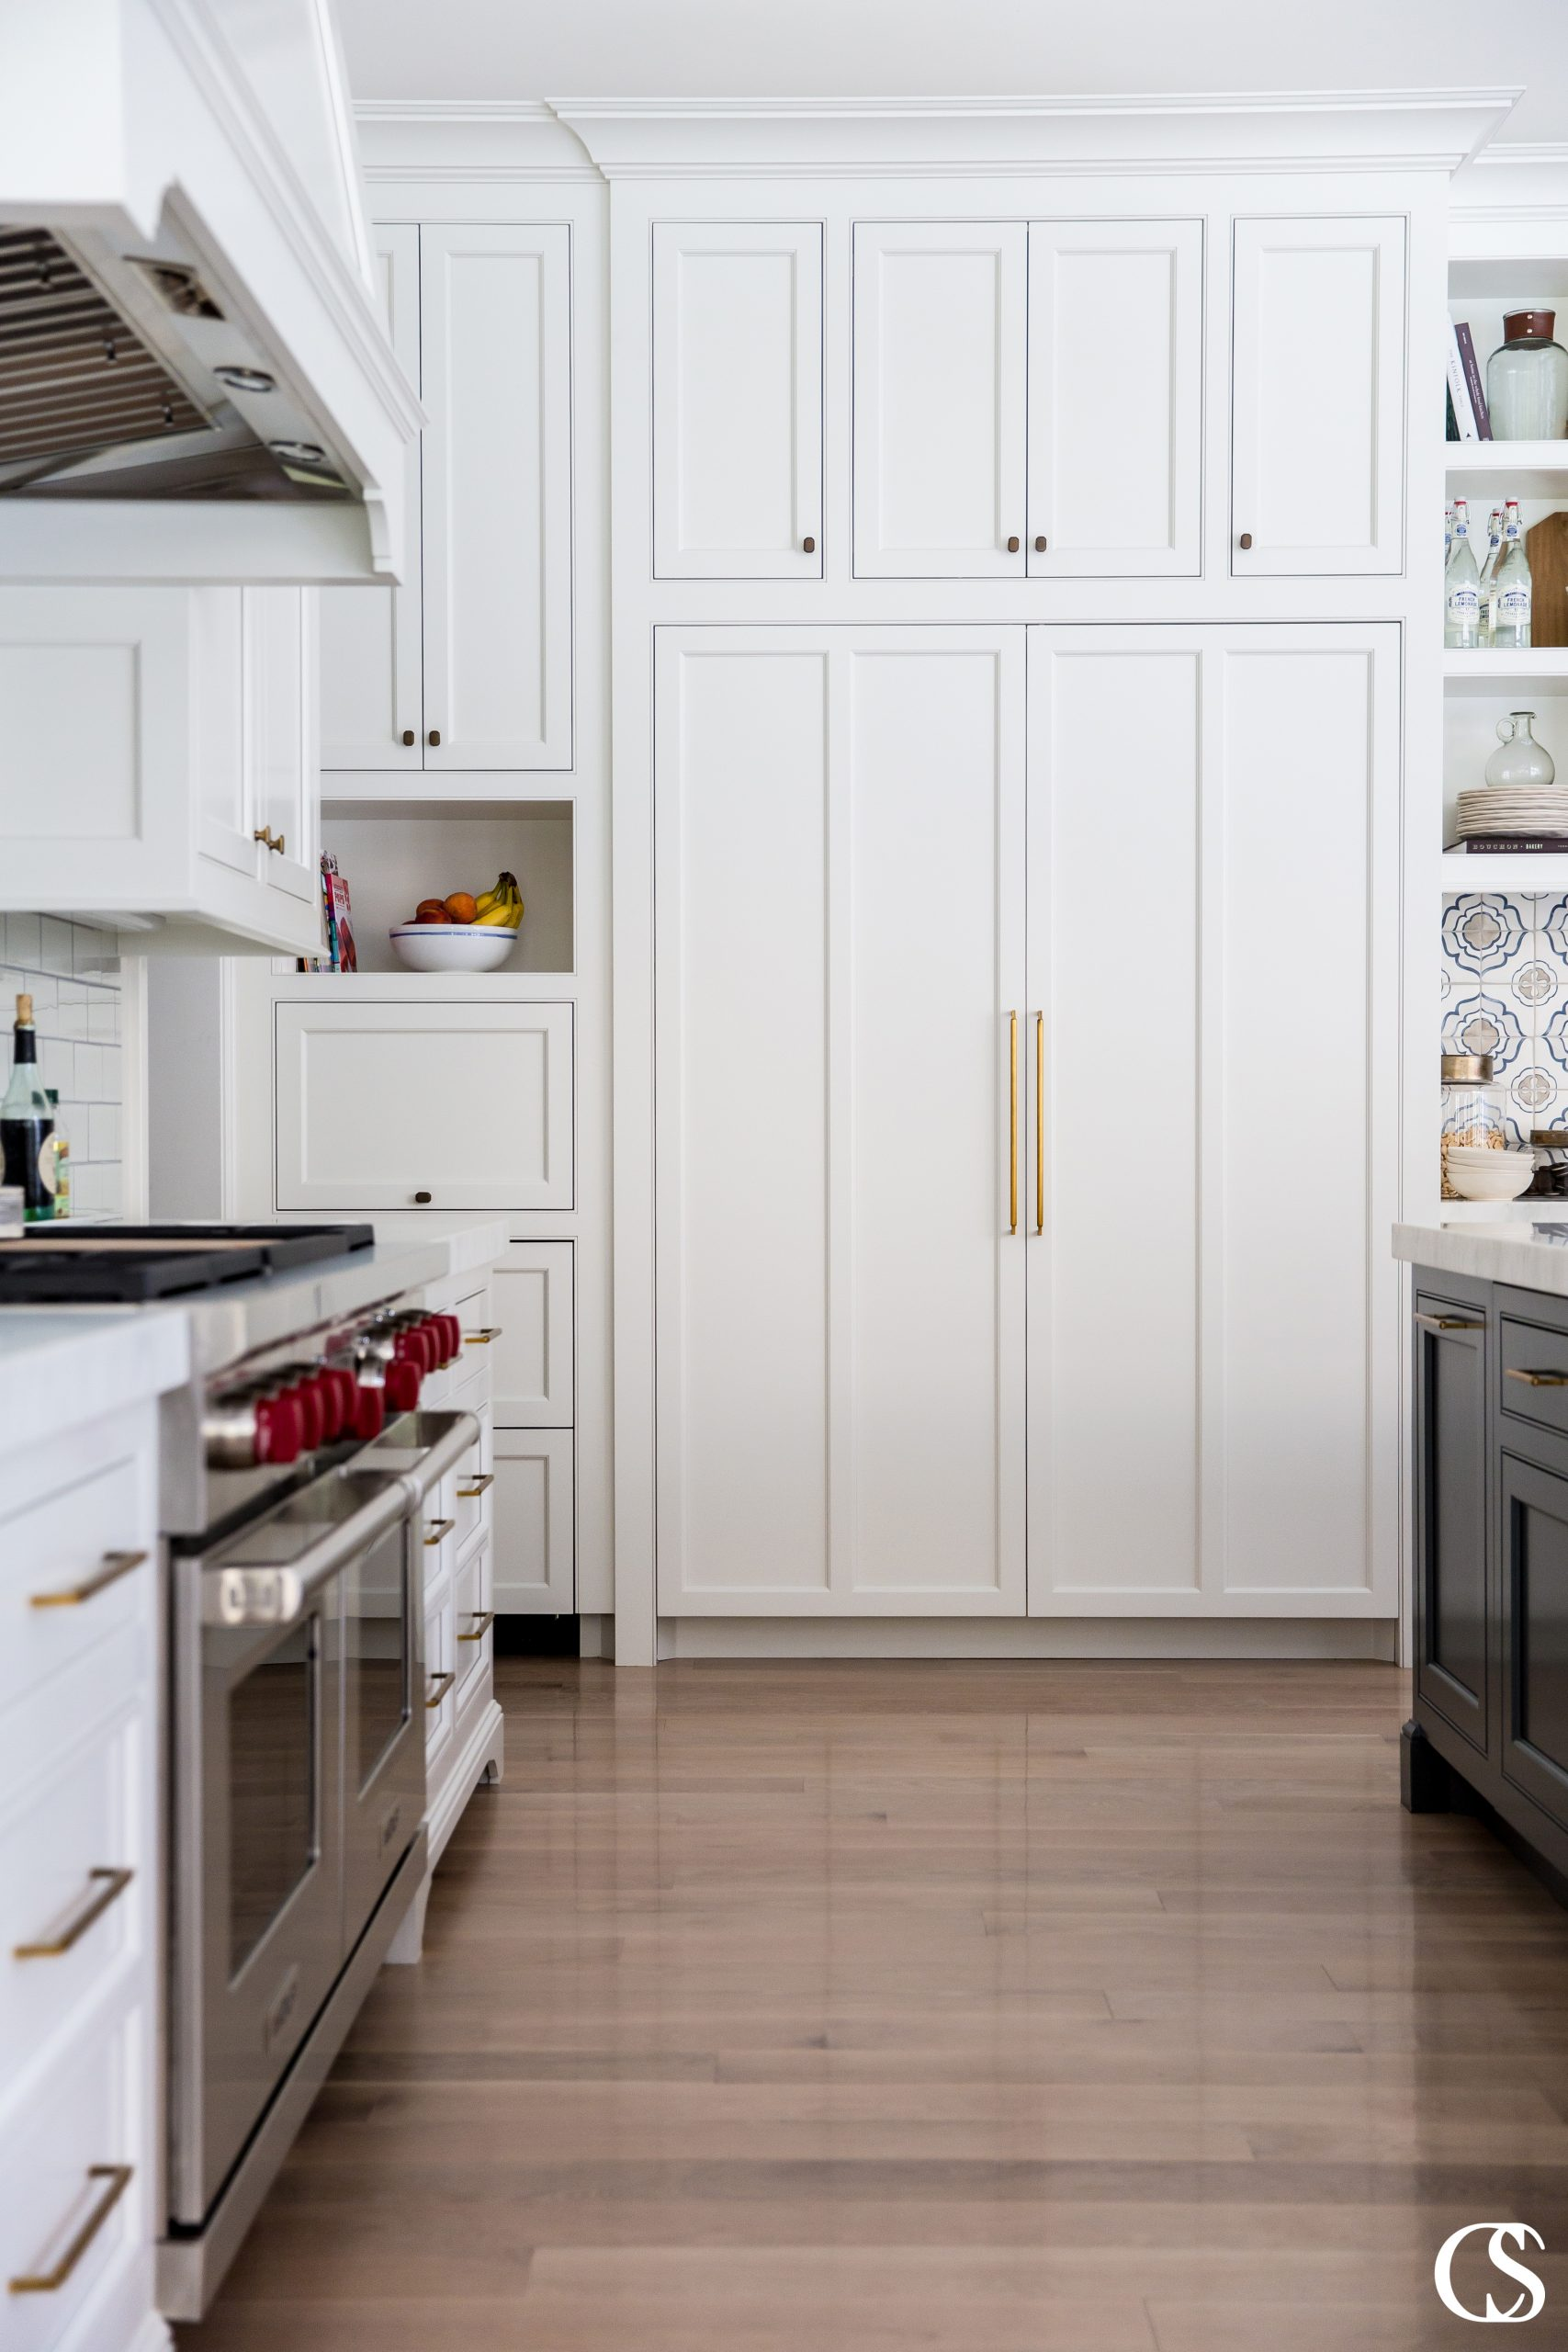 This trendy kitchen cabinet design is also timeless and beautifully functional. Any trend you indulge in should tick all those boxes too!